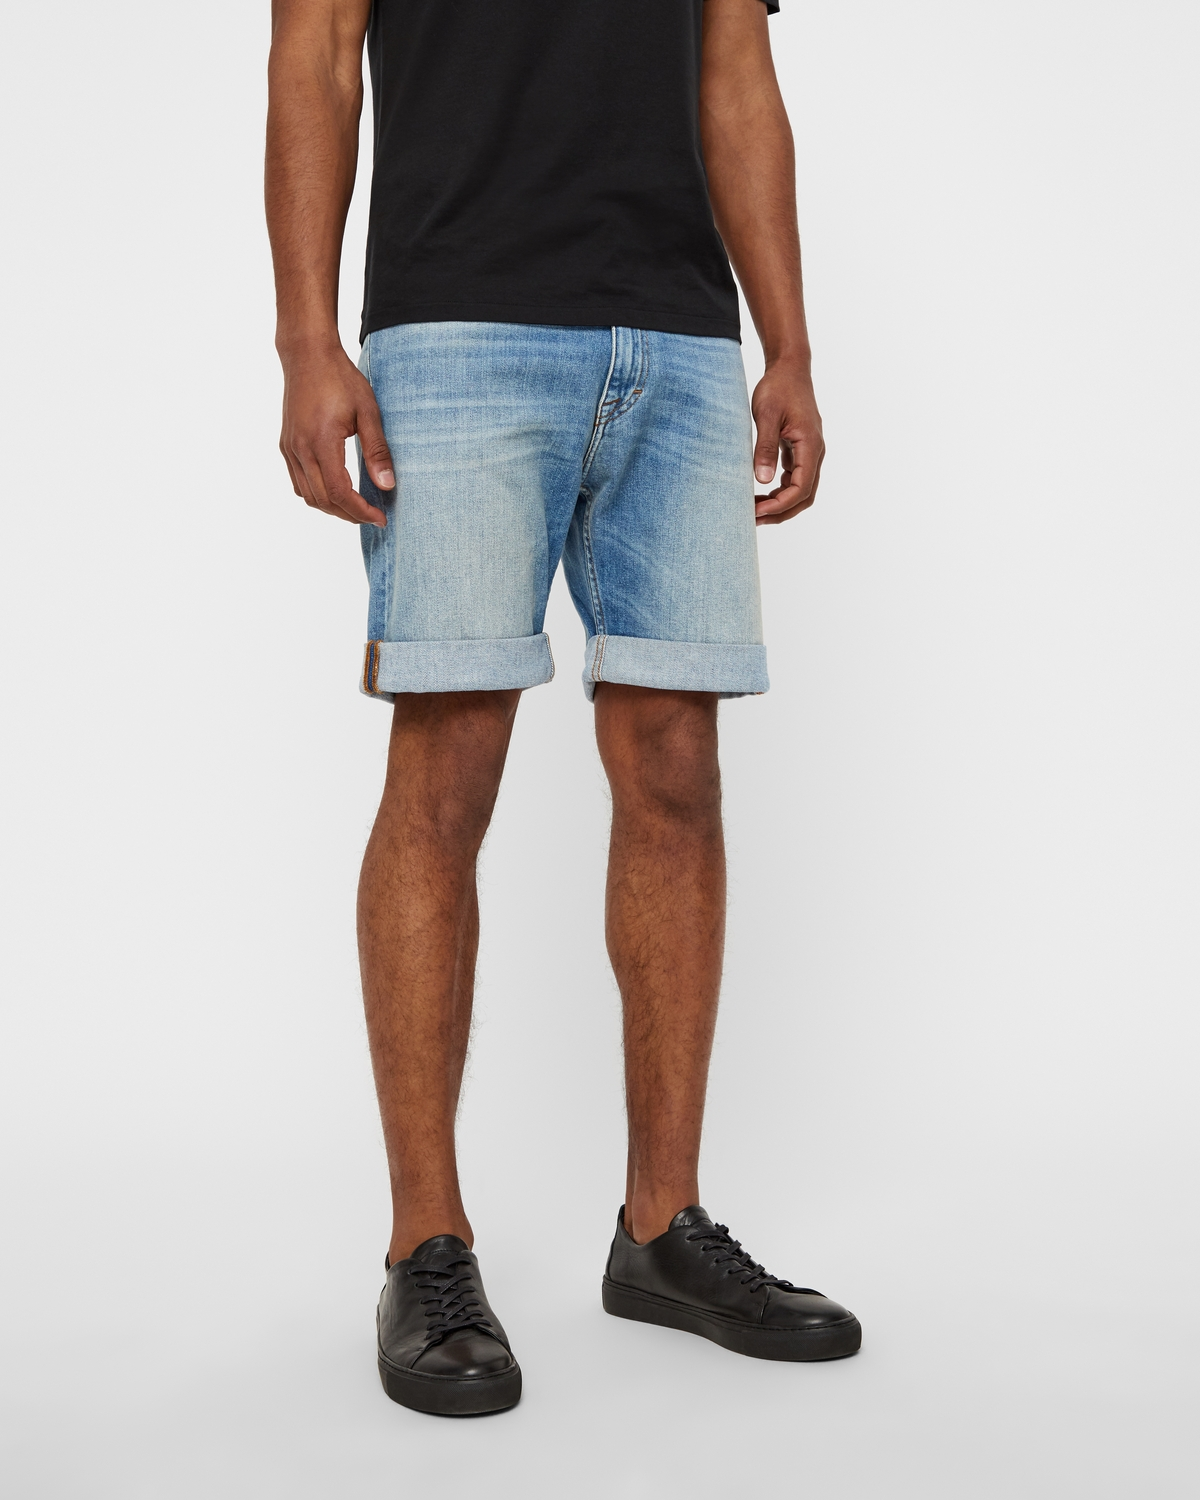 Tiger of Sweden ASH shorts